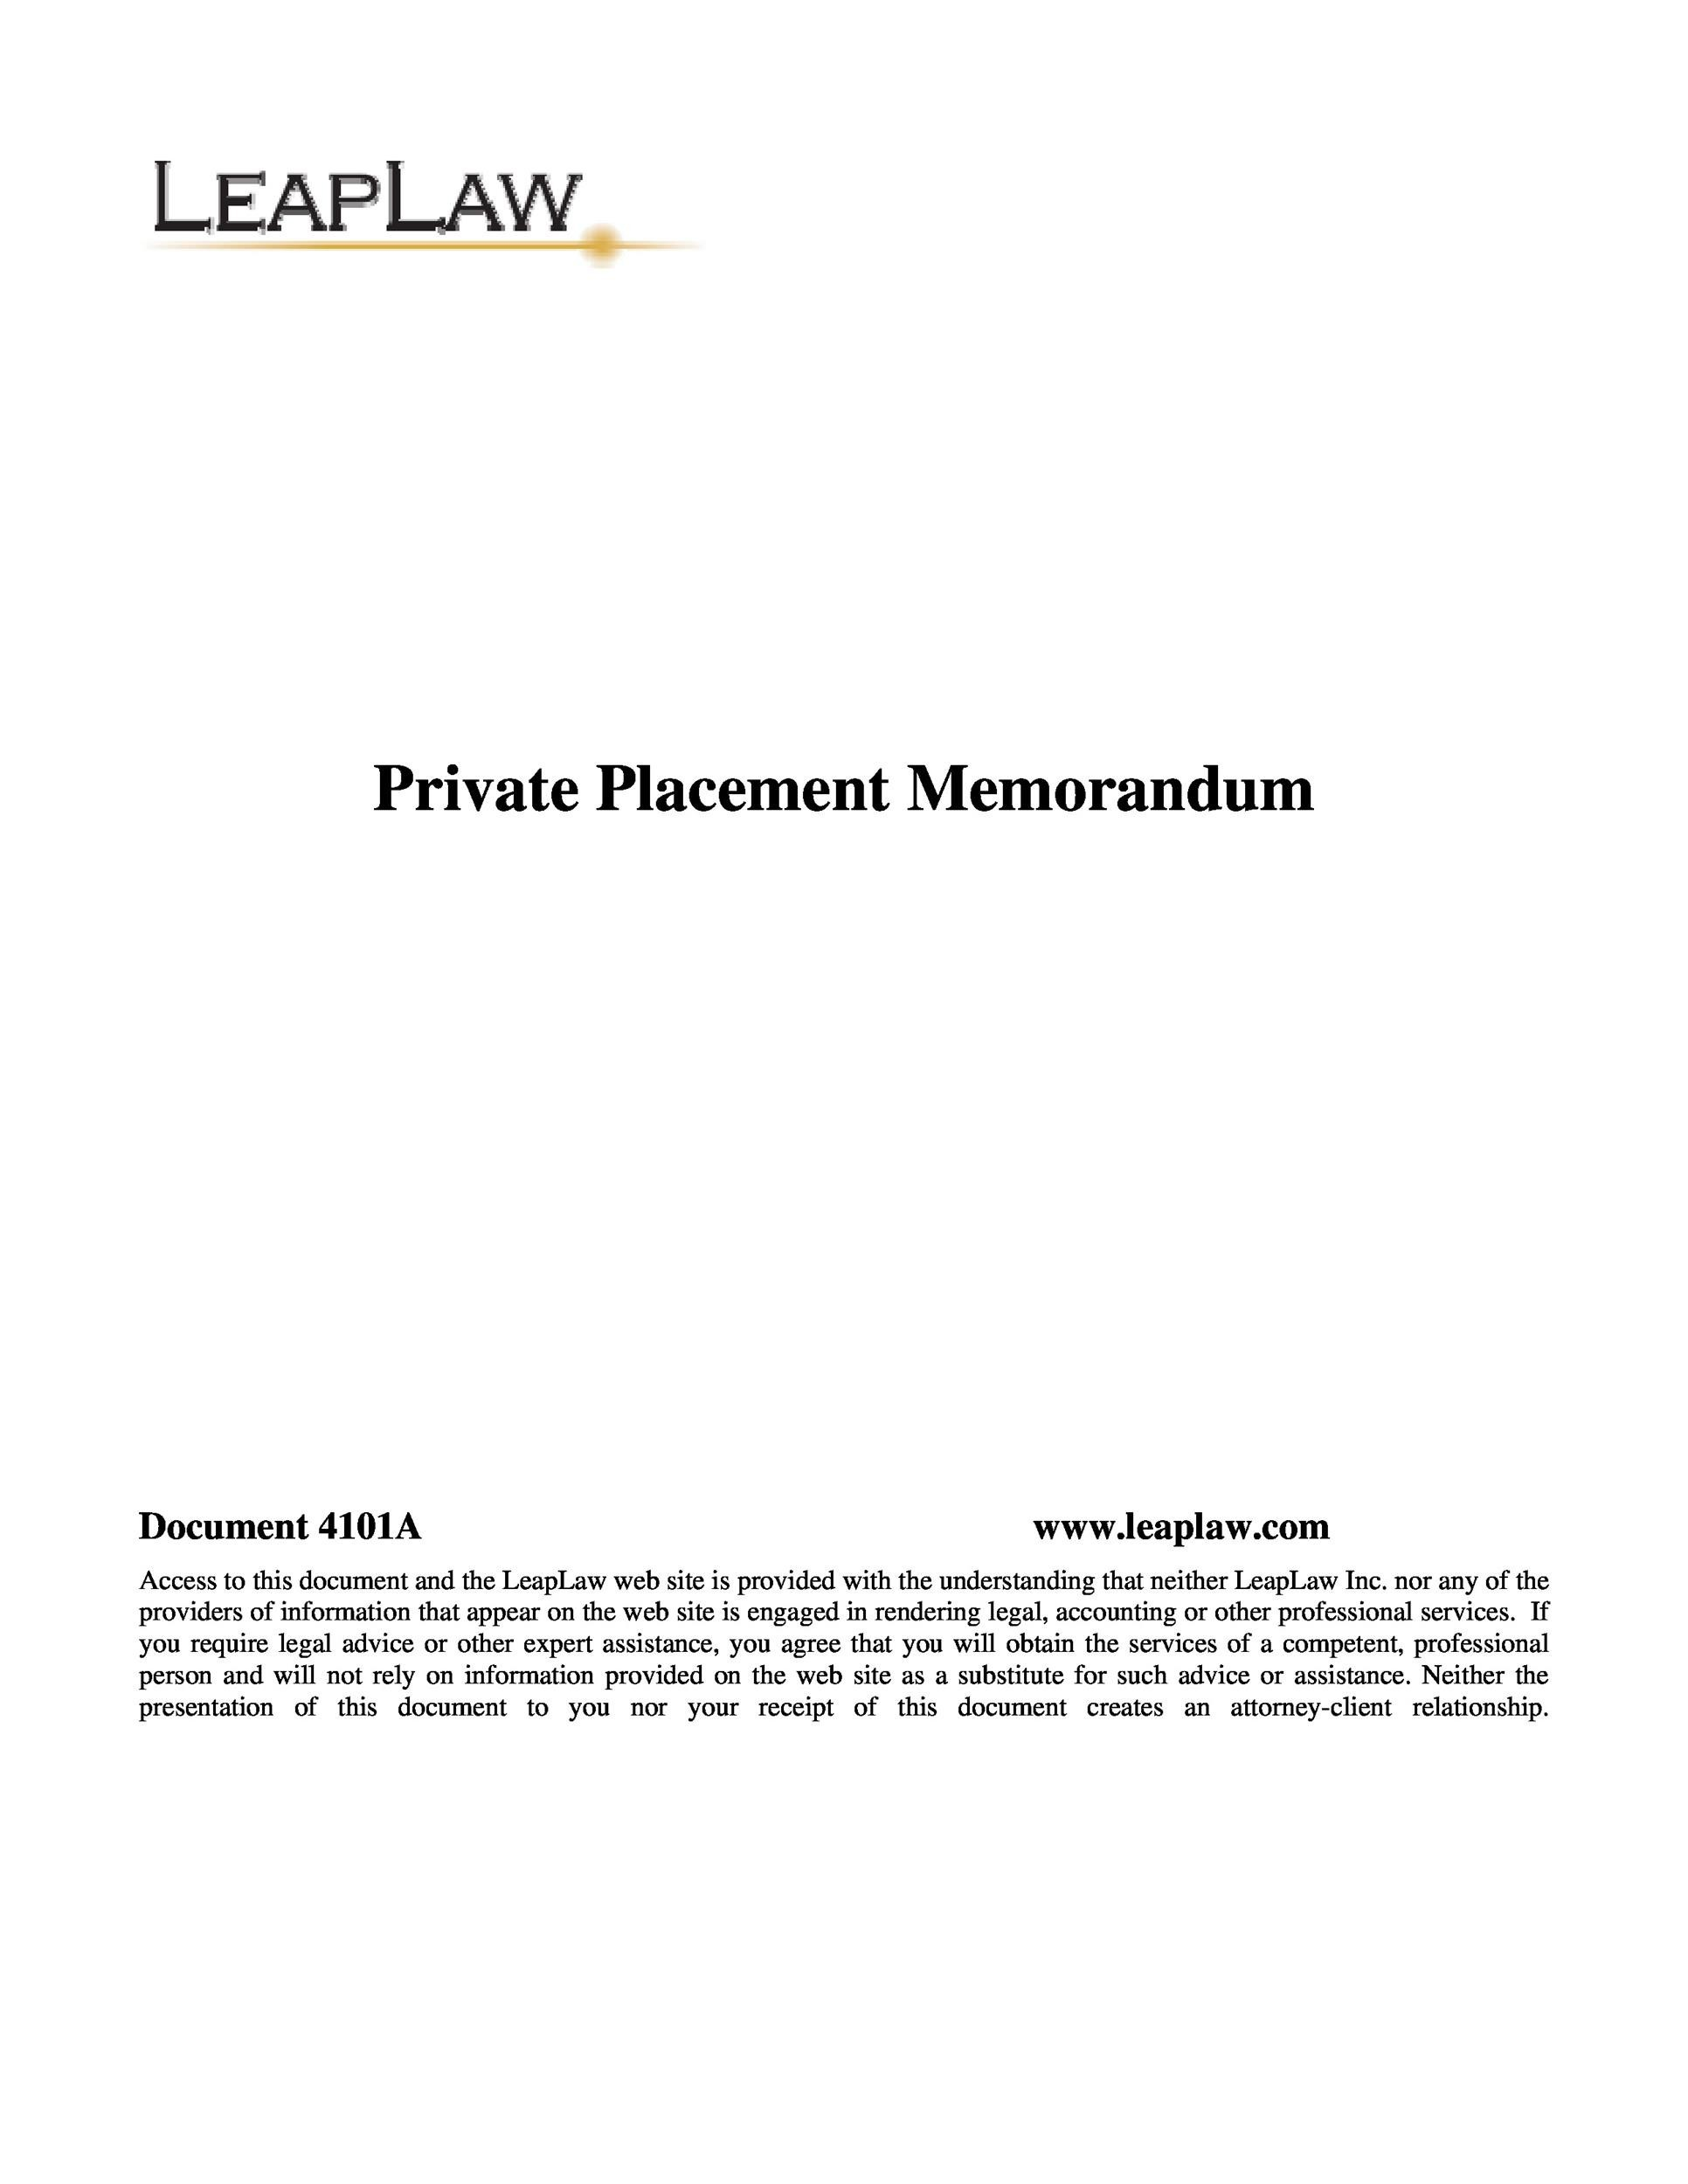 Free private placement memorandum template 24